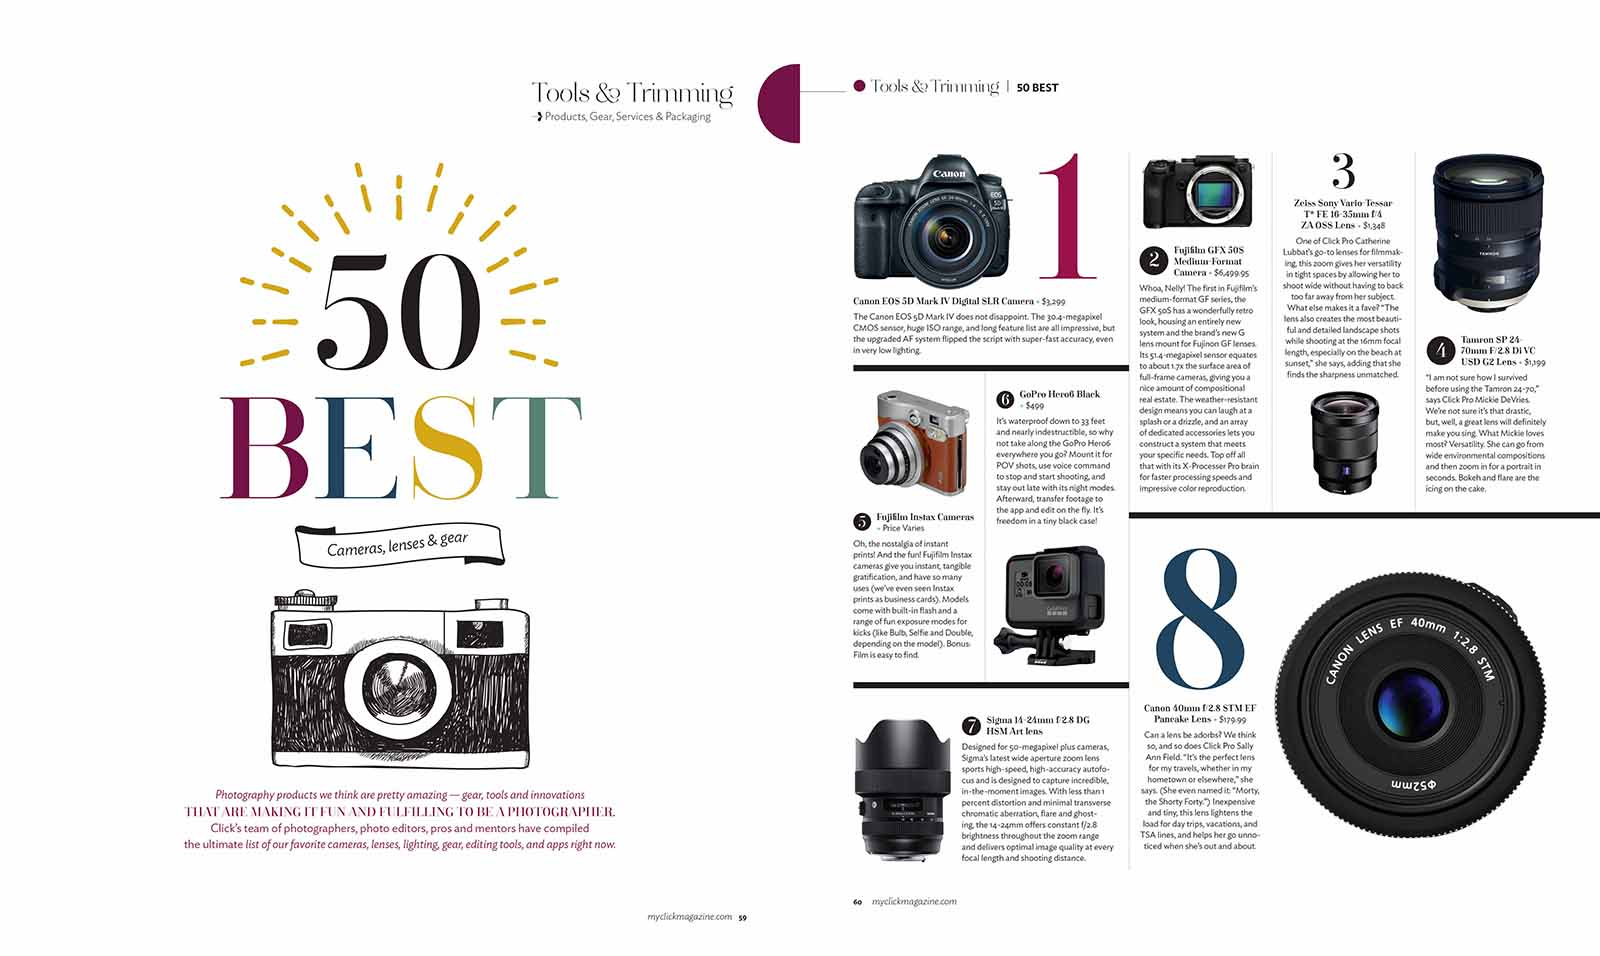 March18-Click-photography-magazine-issue-preview-0